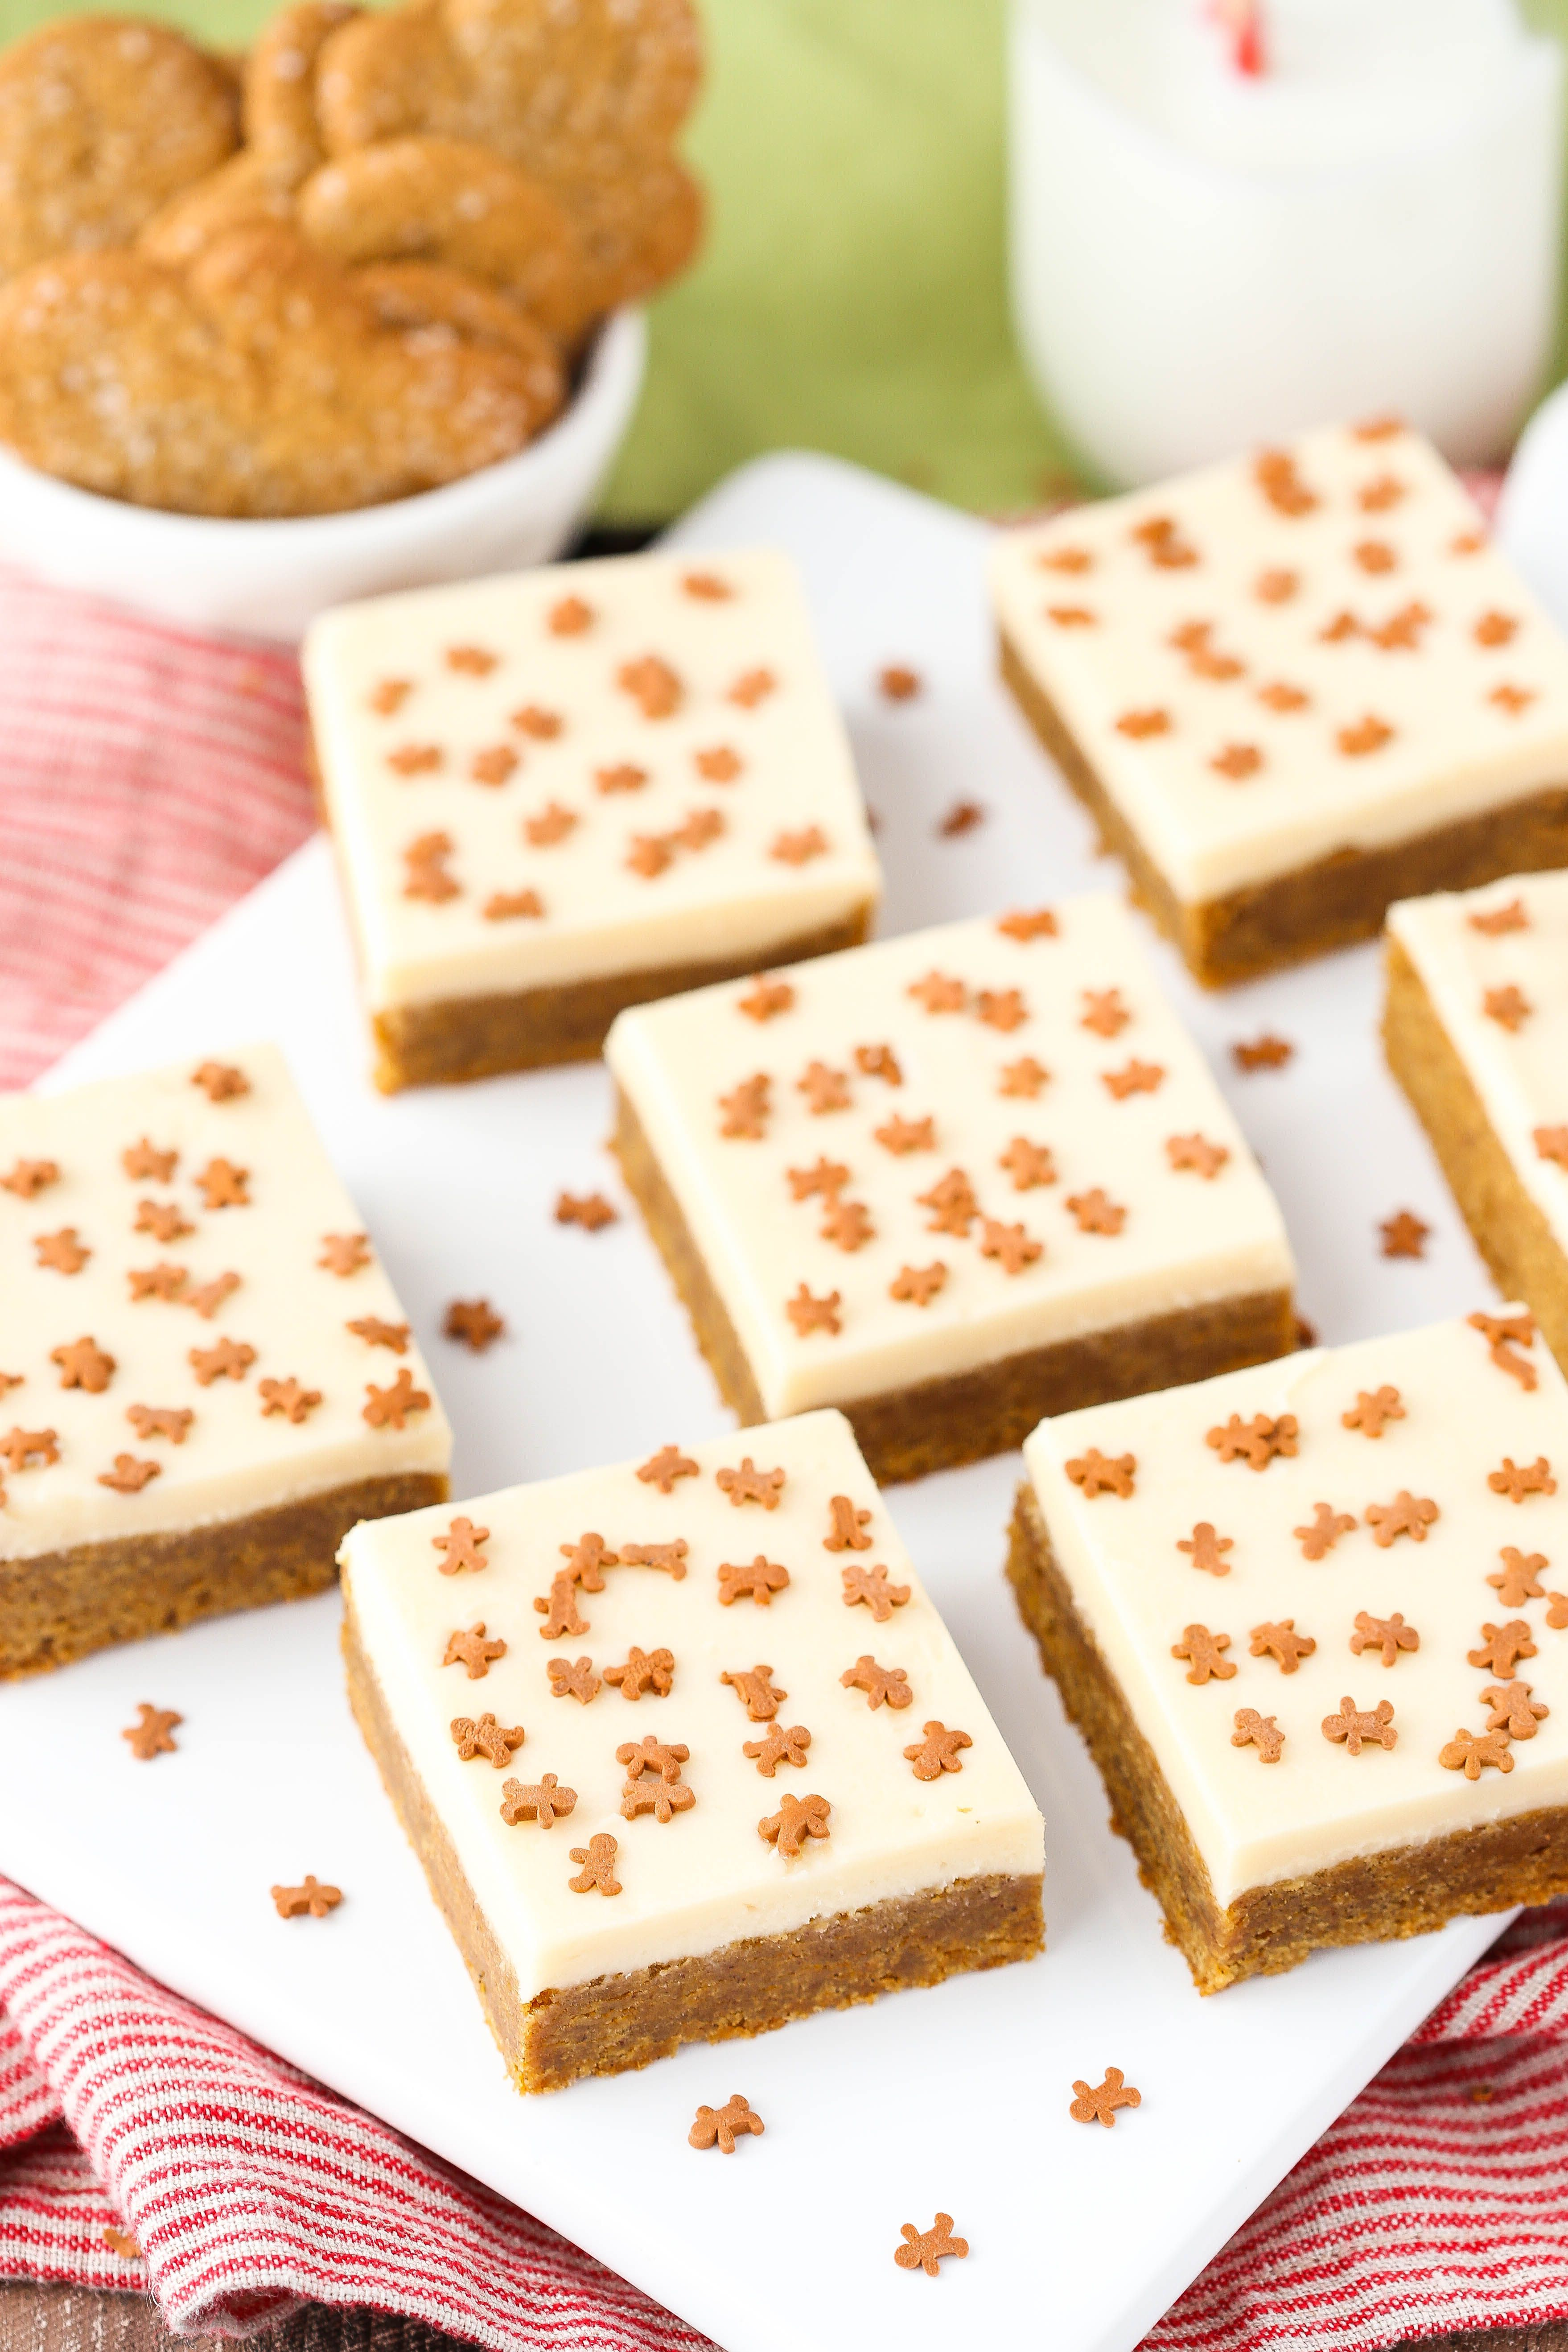 Caramel-Gingerbread Cookie Bars Recipe